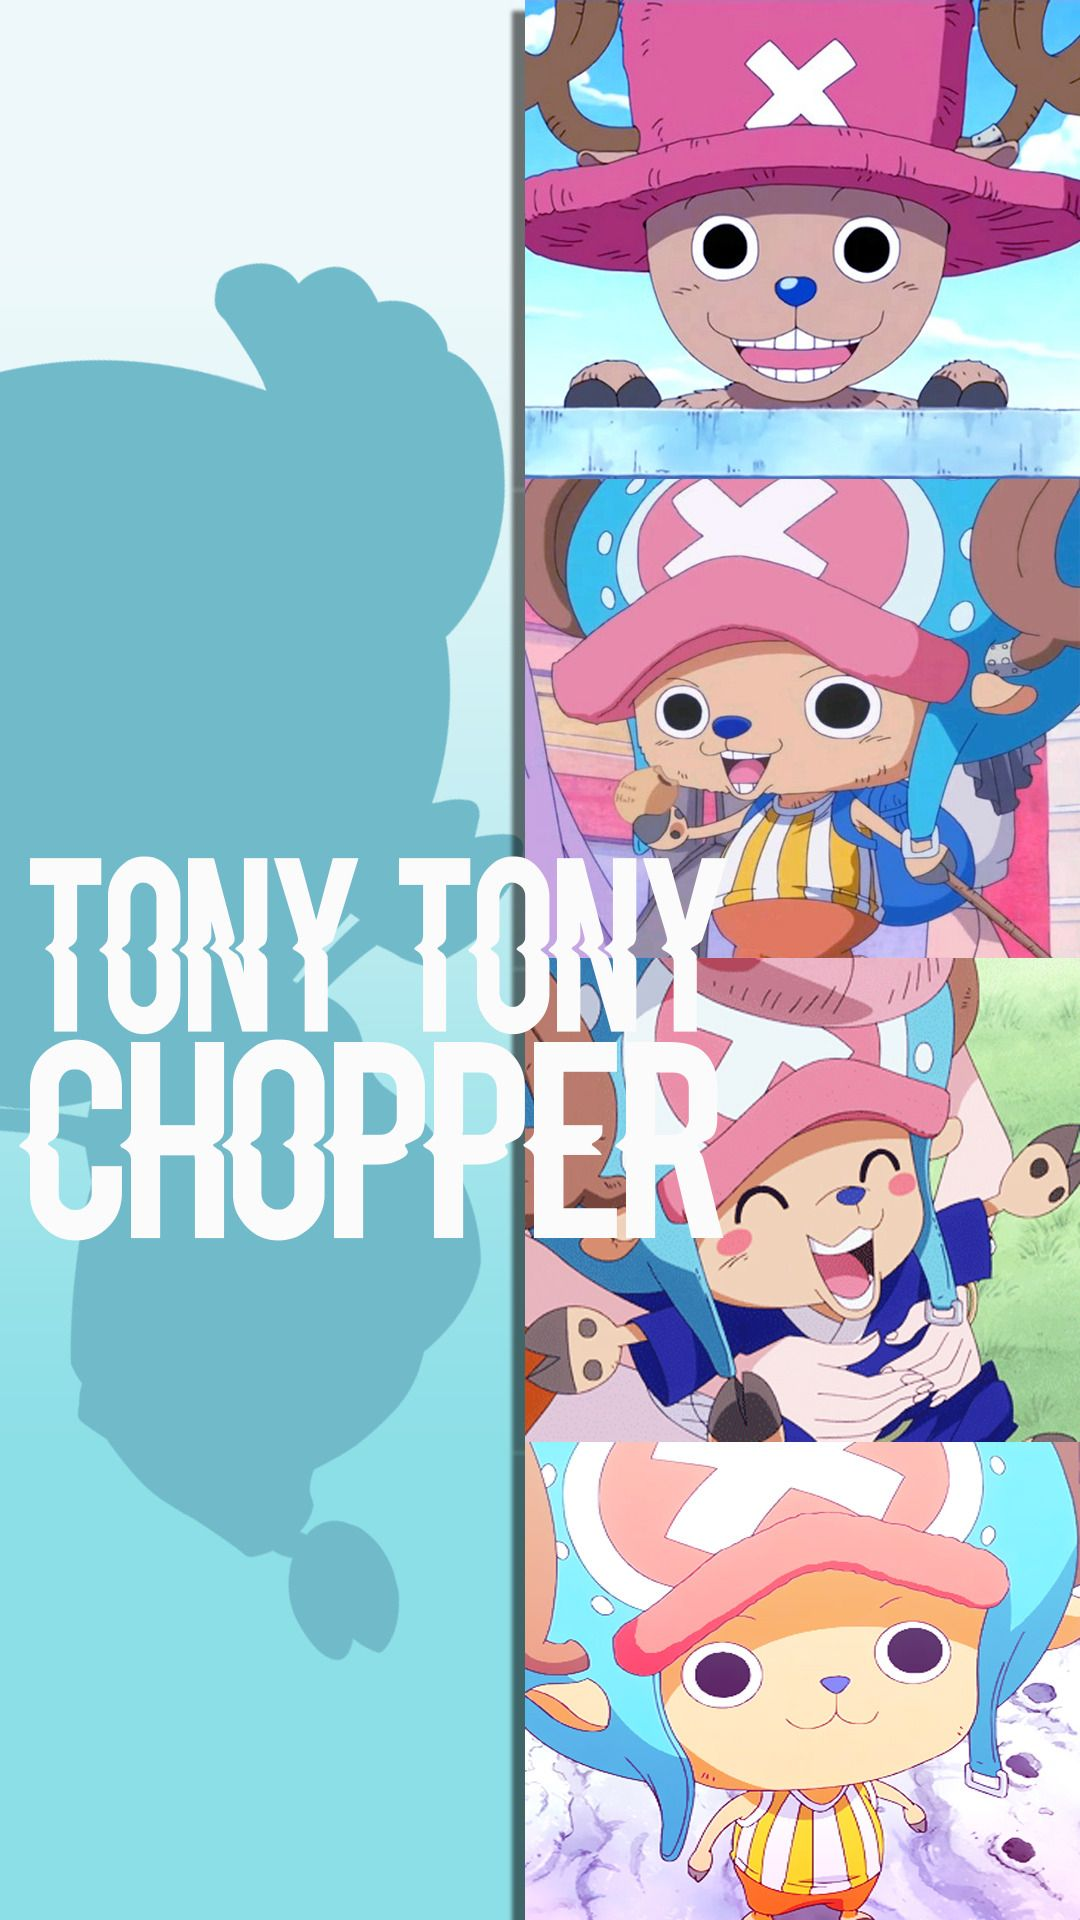 Wallpapers And Lockscreen One Piece Boys If You Downloaded Rb Or Like One Piece Chopper One Piece Images One Piece Tumblr